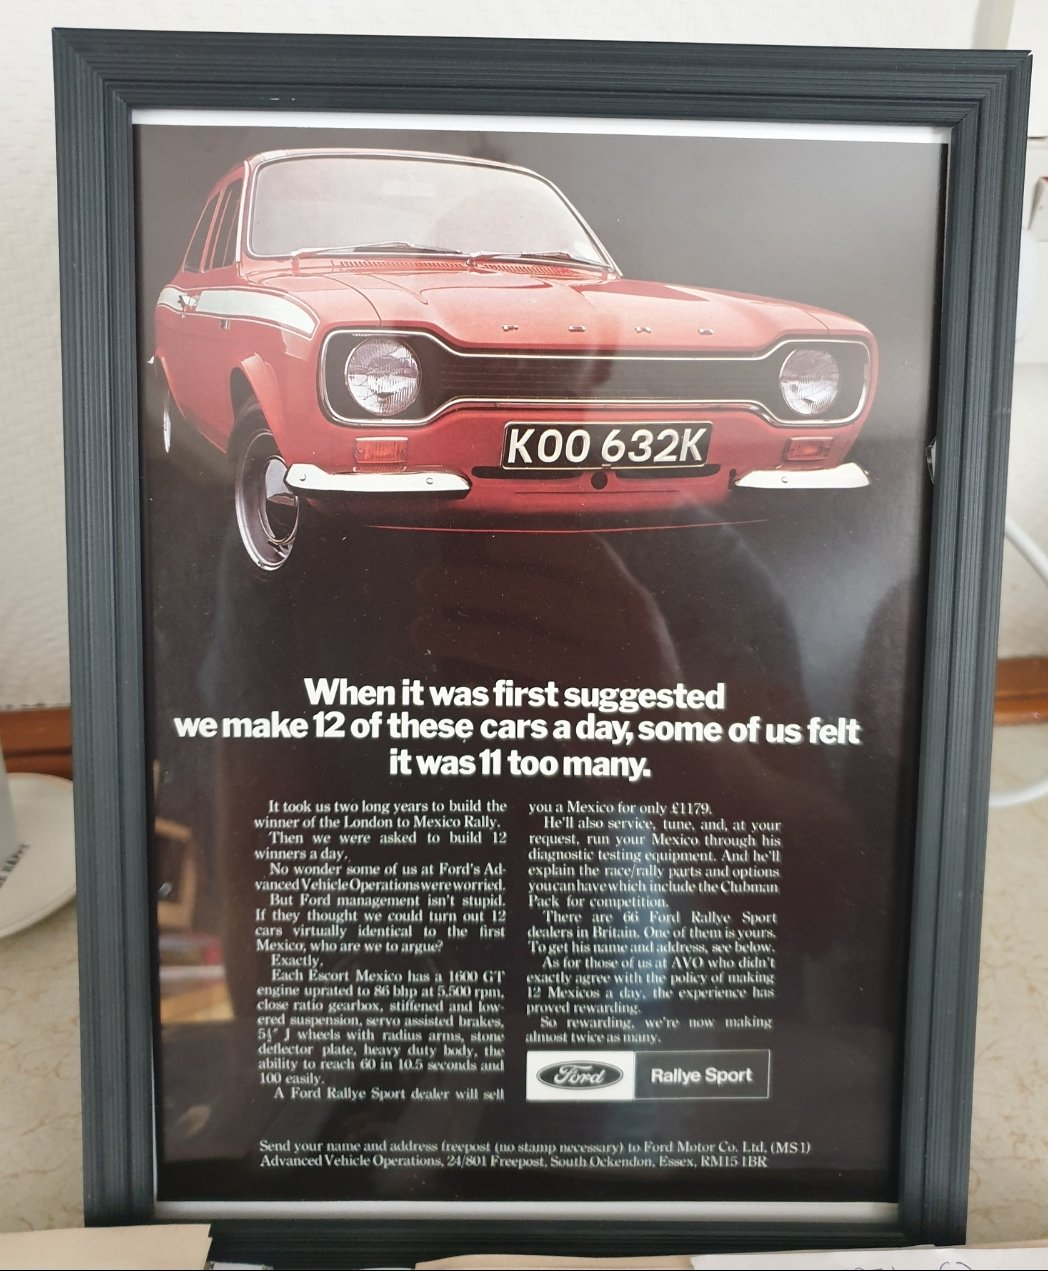 Original 1971 Ford Escort Mexico Framed Advert